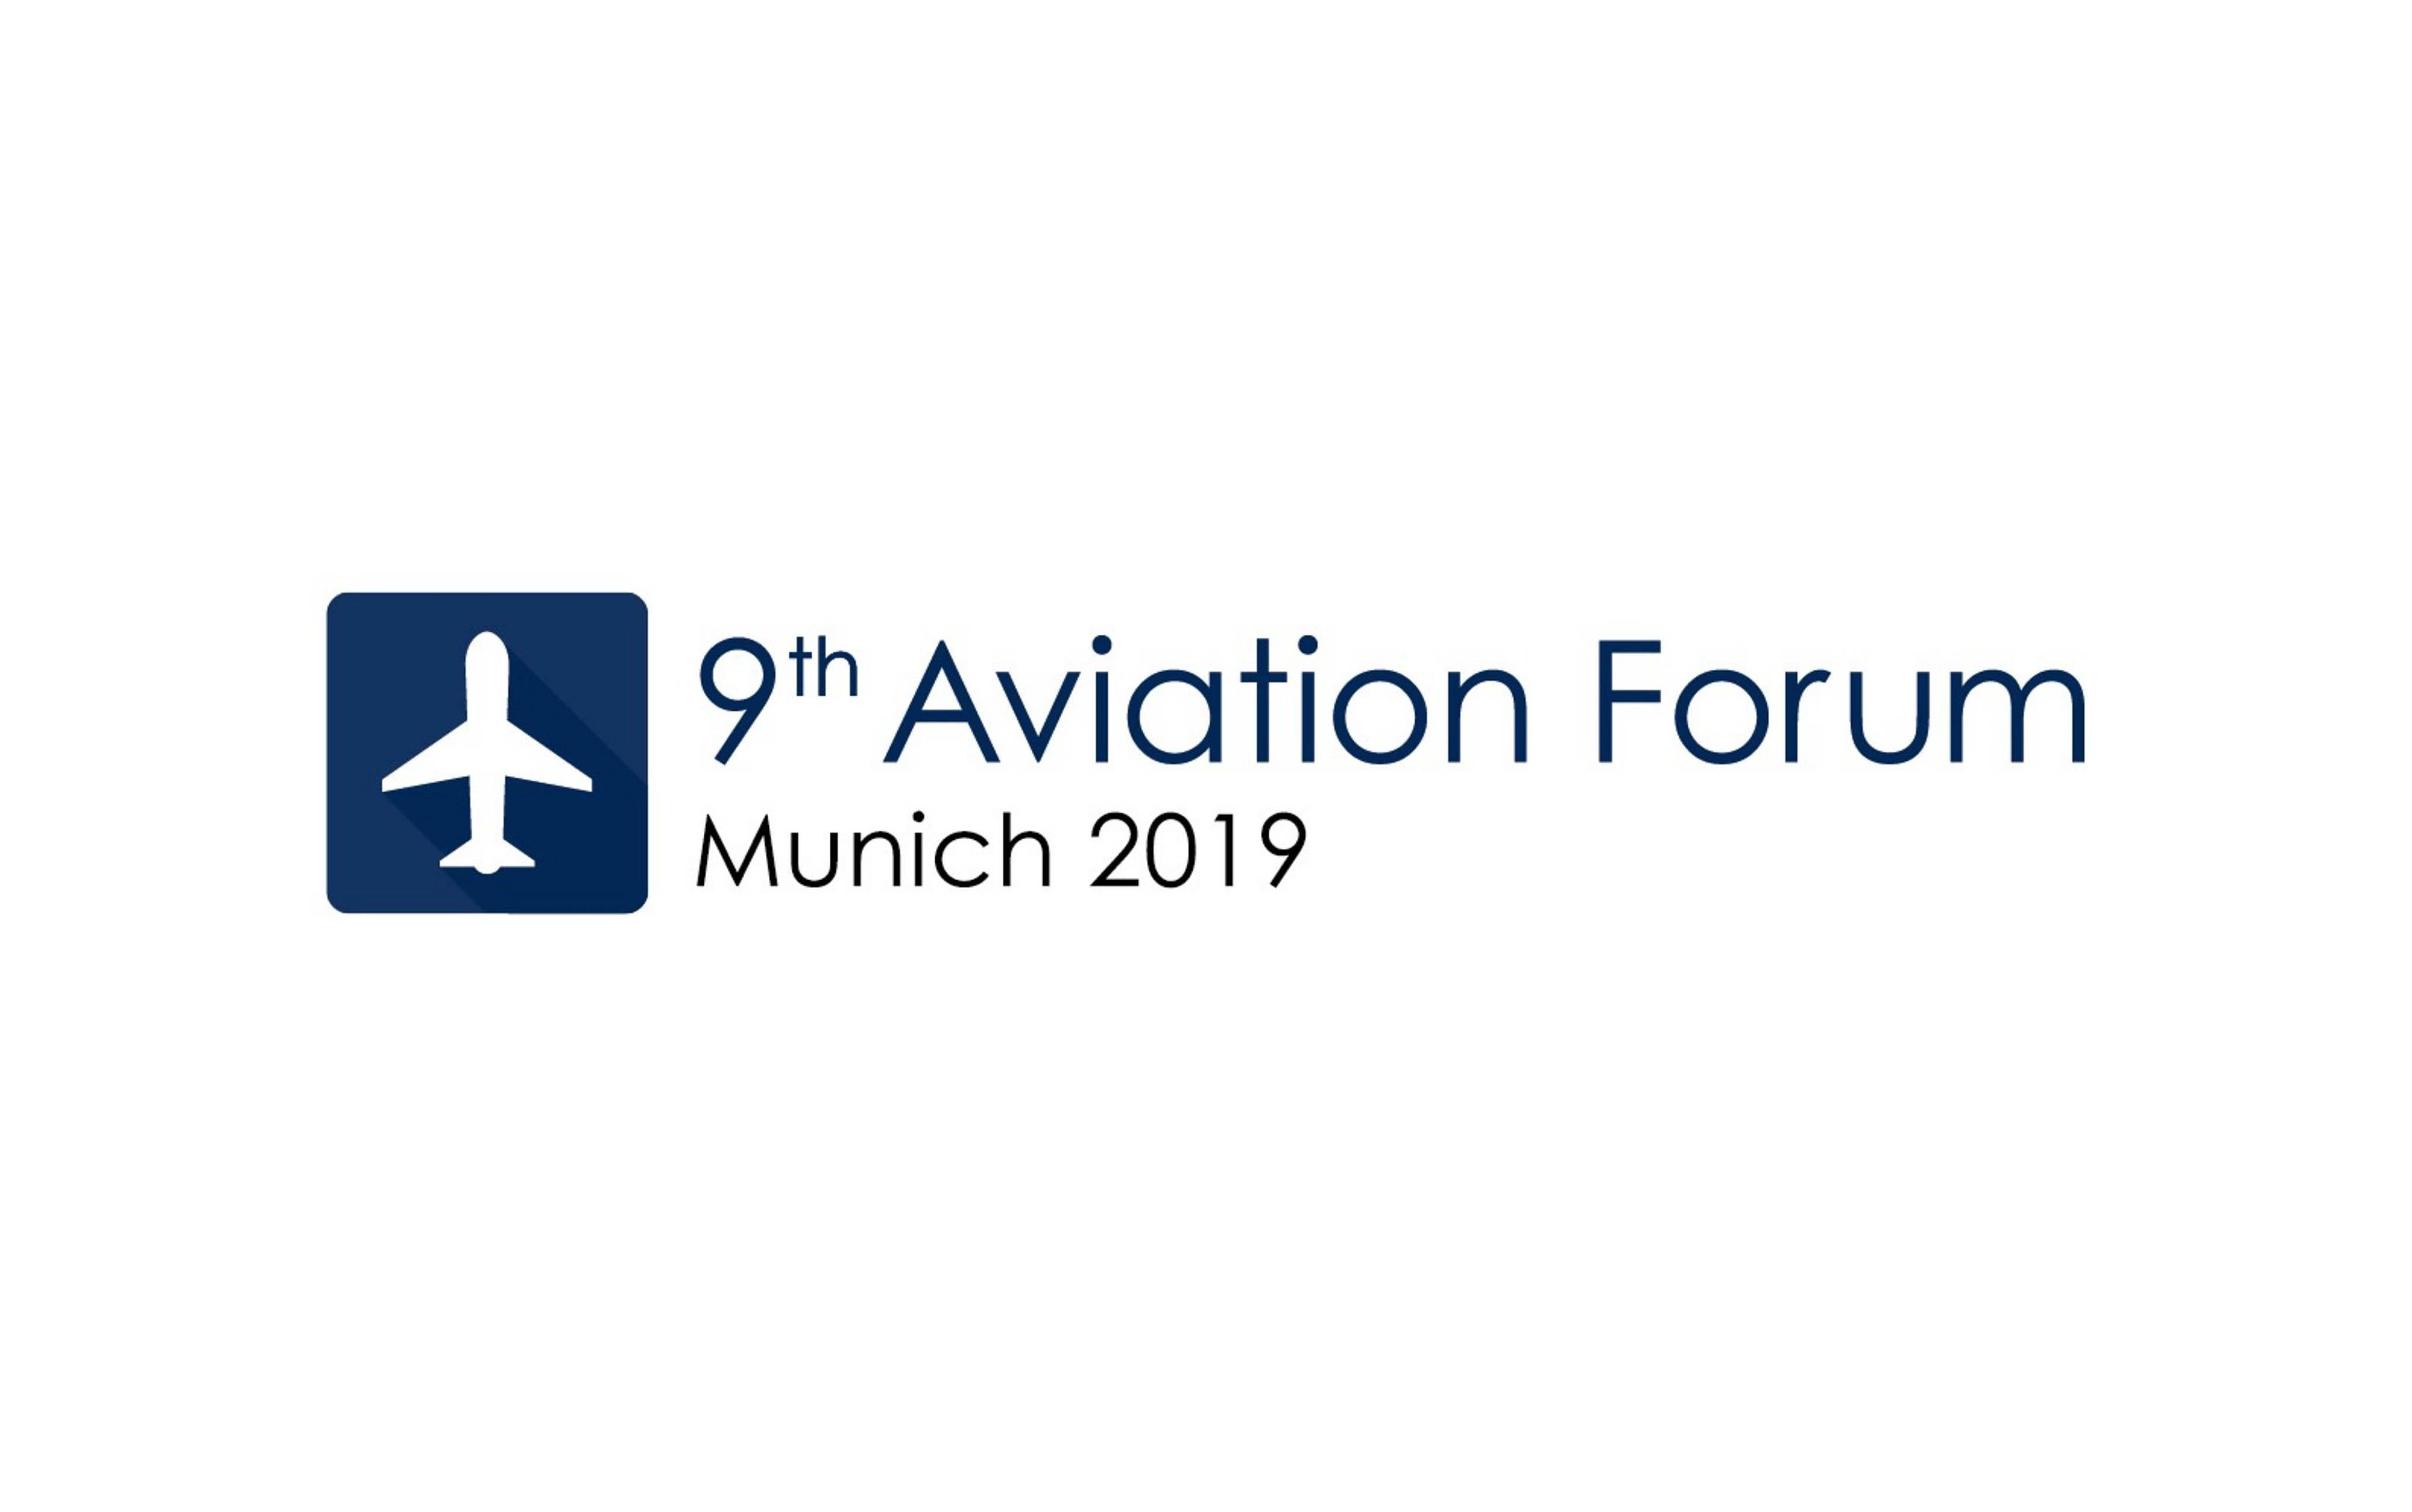 Aviation Forum Munich 2019